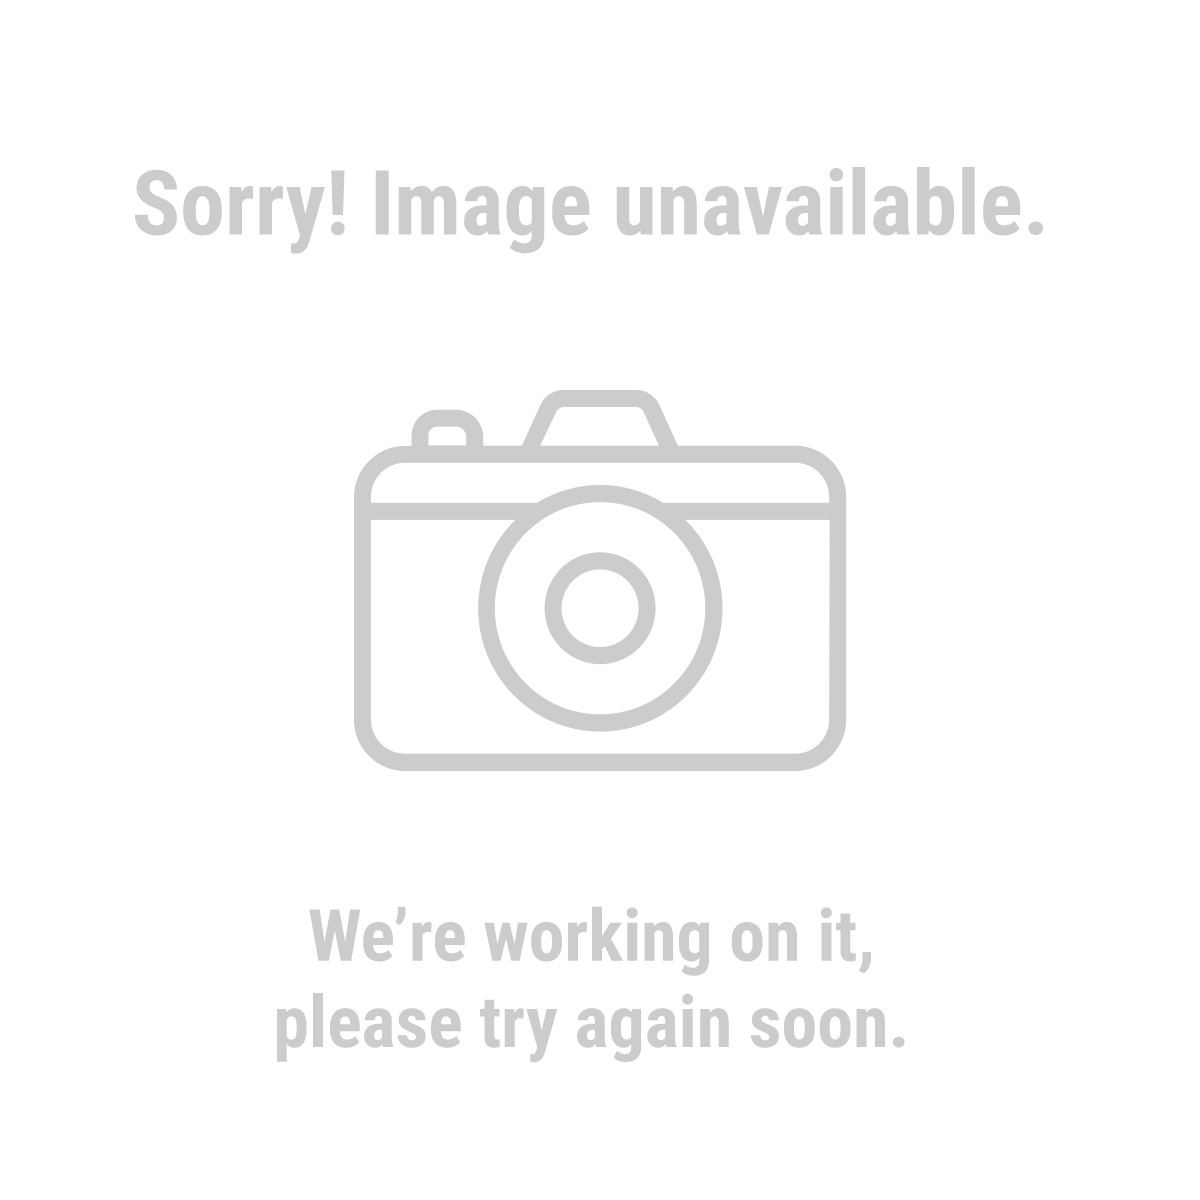 Ozone 3 67092 Venom Ozone 3-Channel Remote Controlled Helicopter